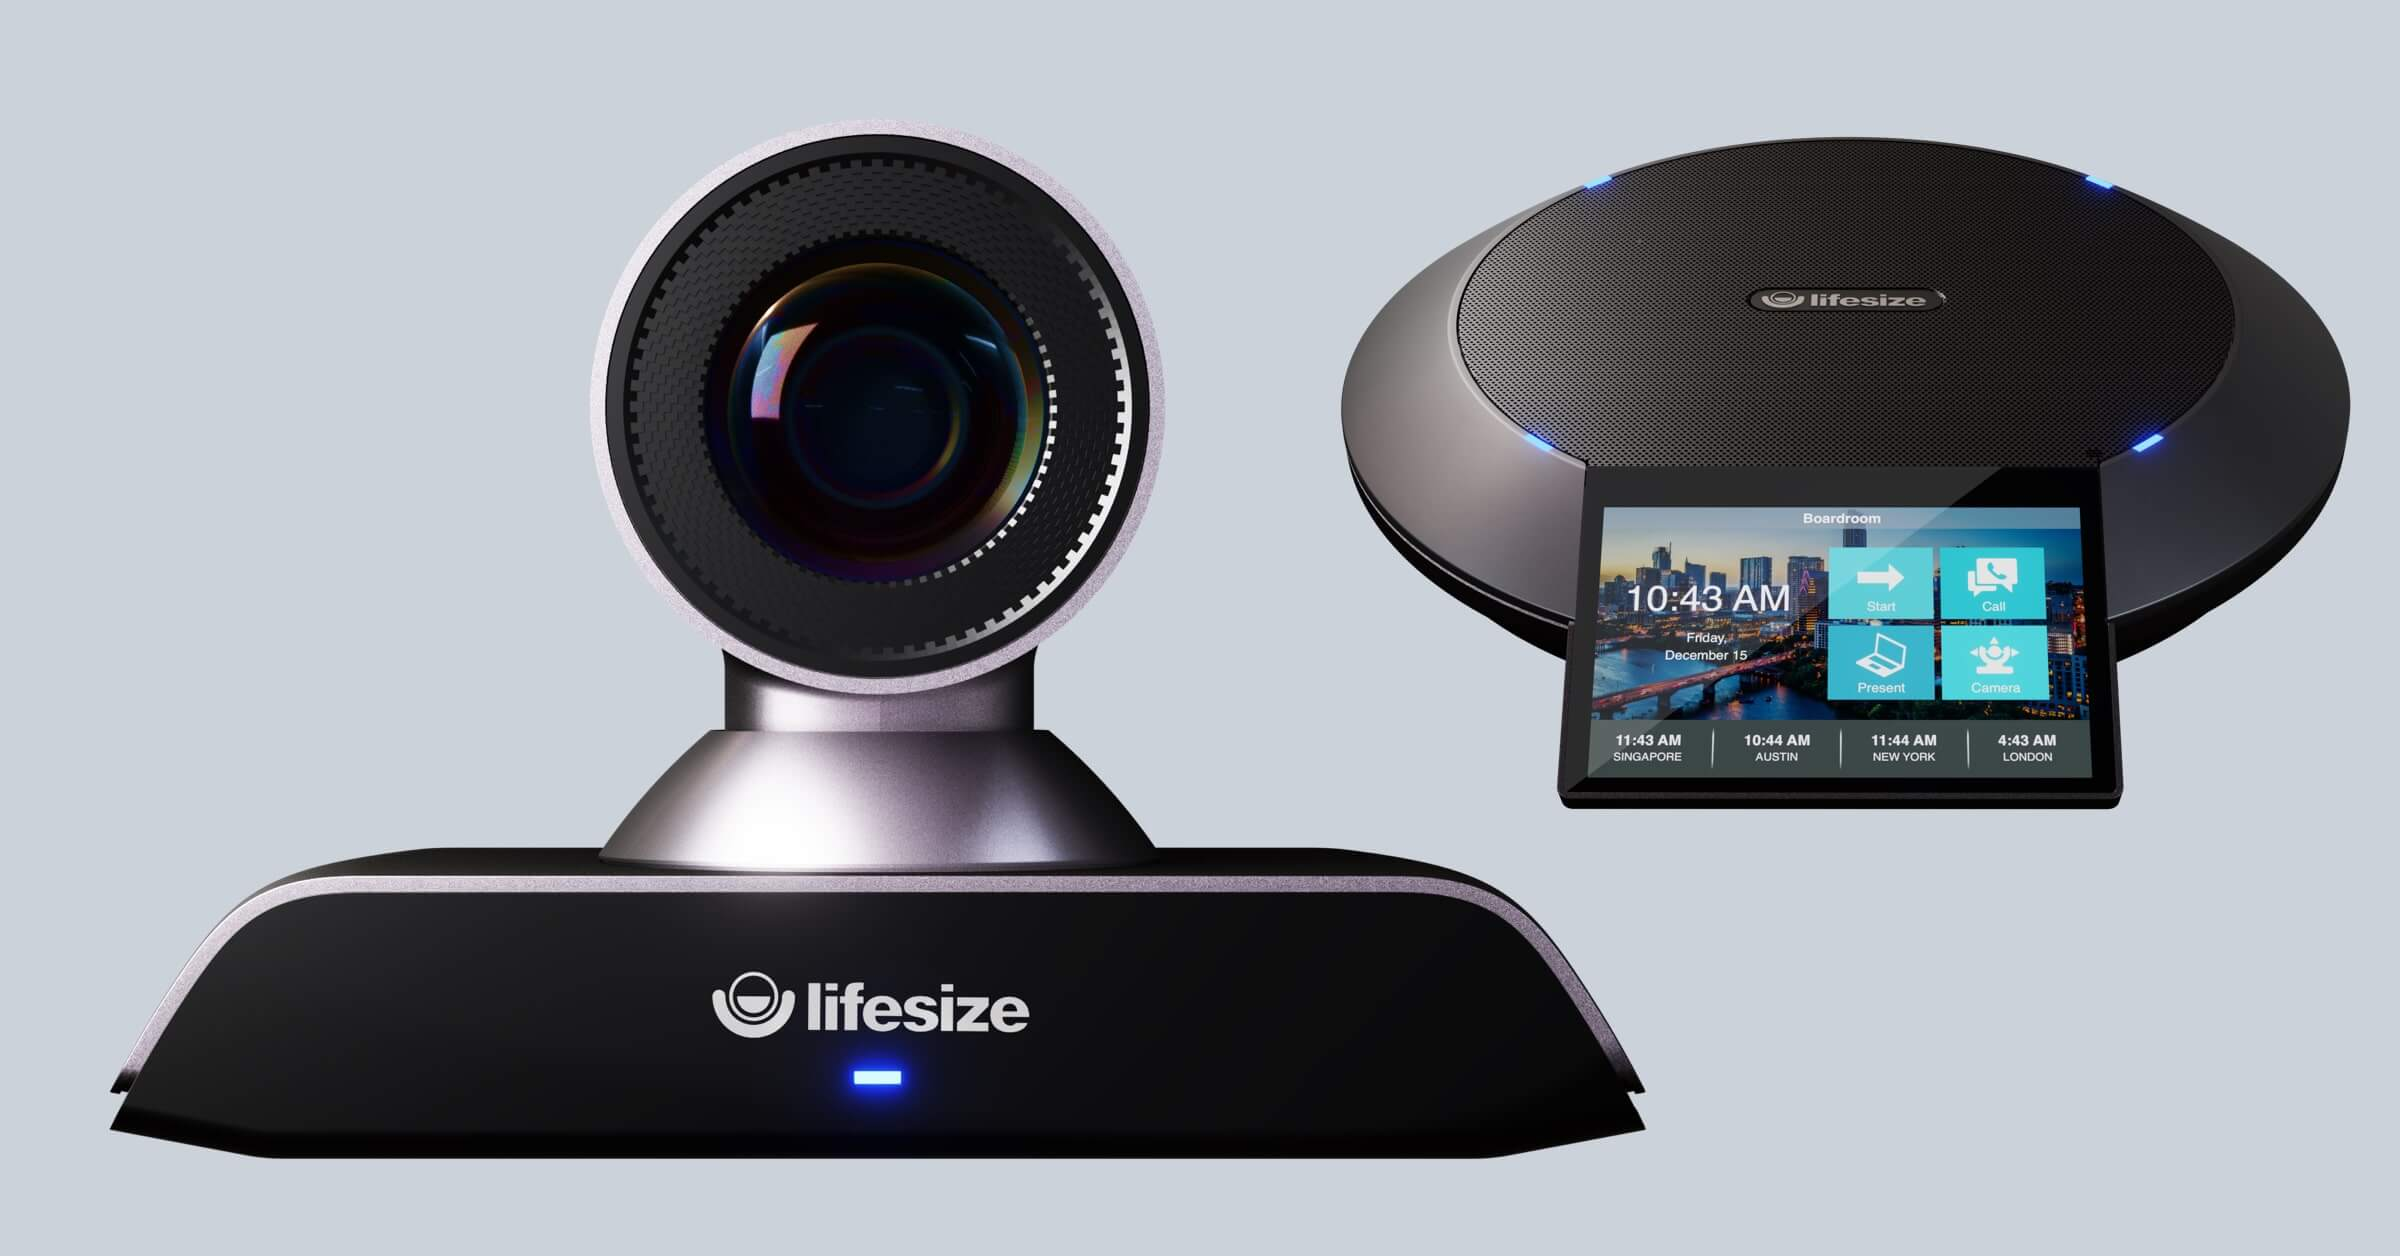 Lifesize Icon 700 video conferencing camera system with Lifesize Phone HD